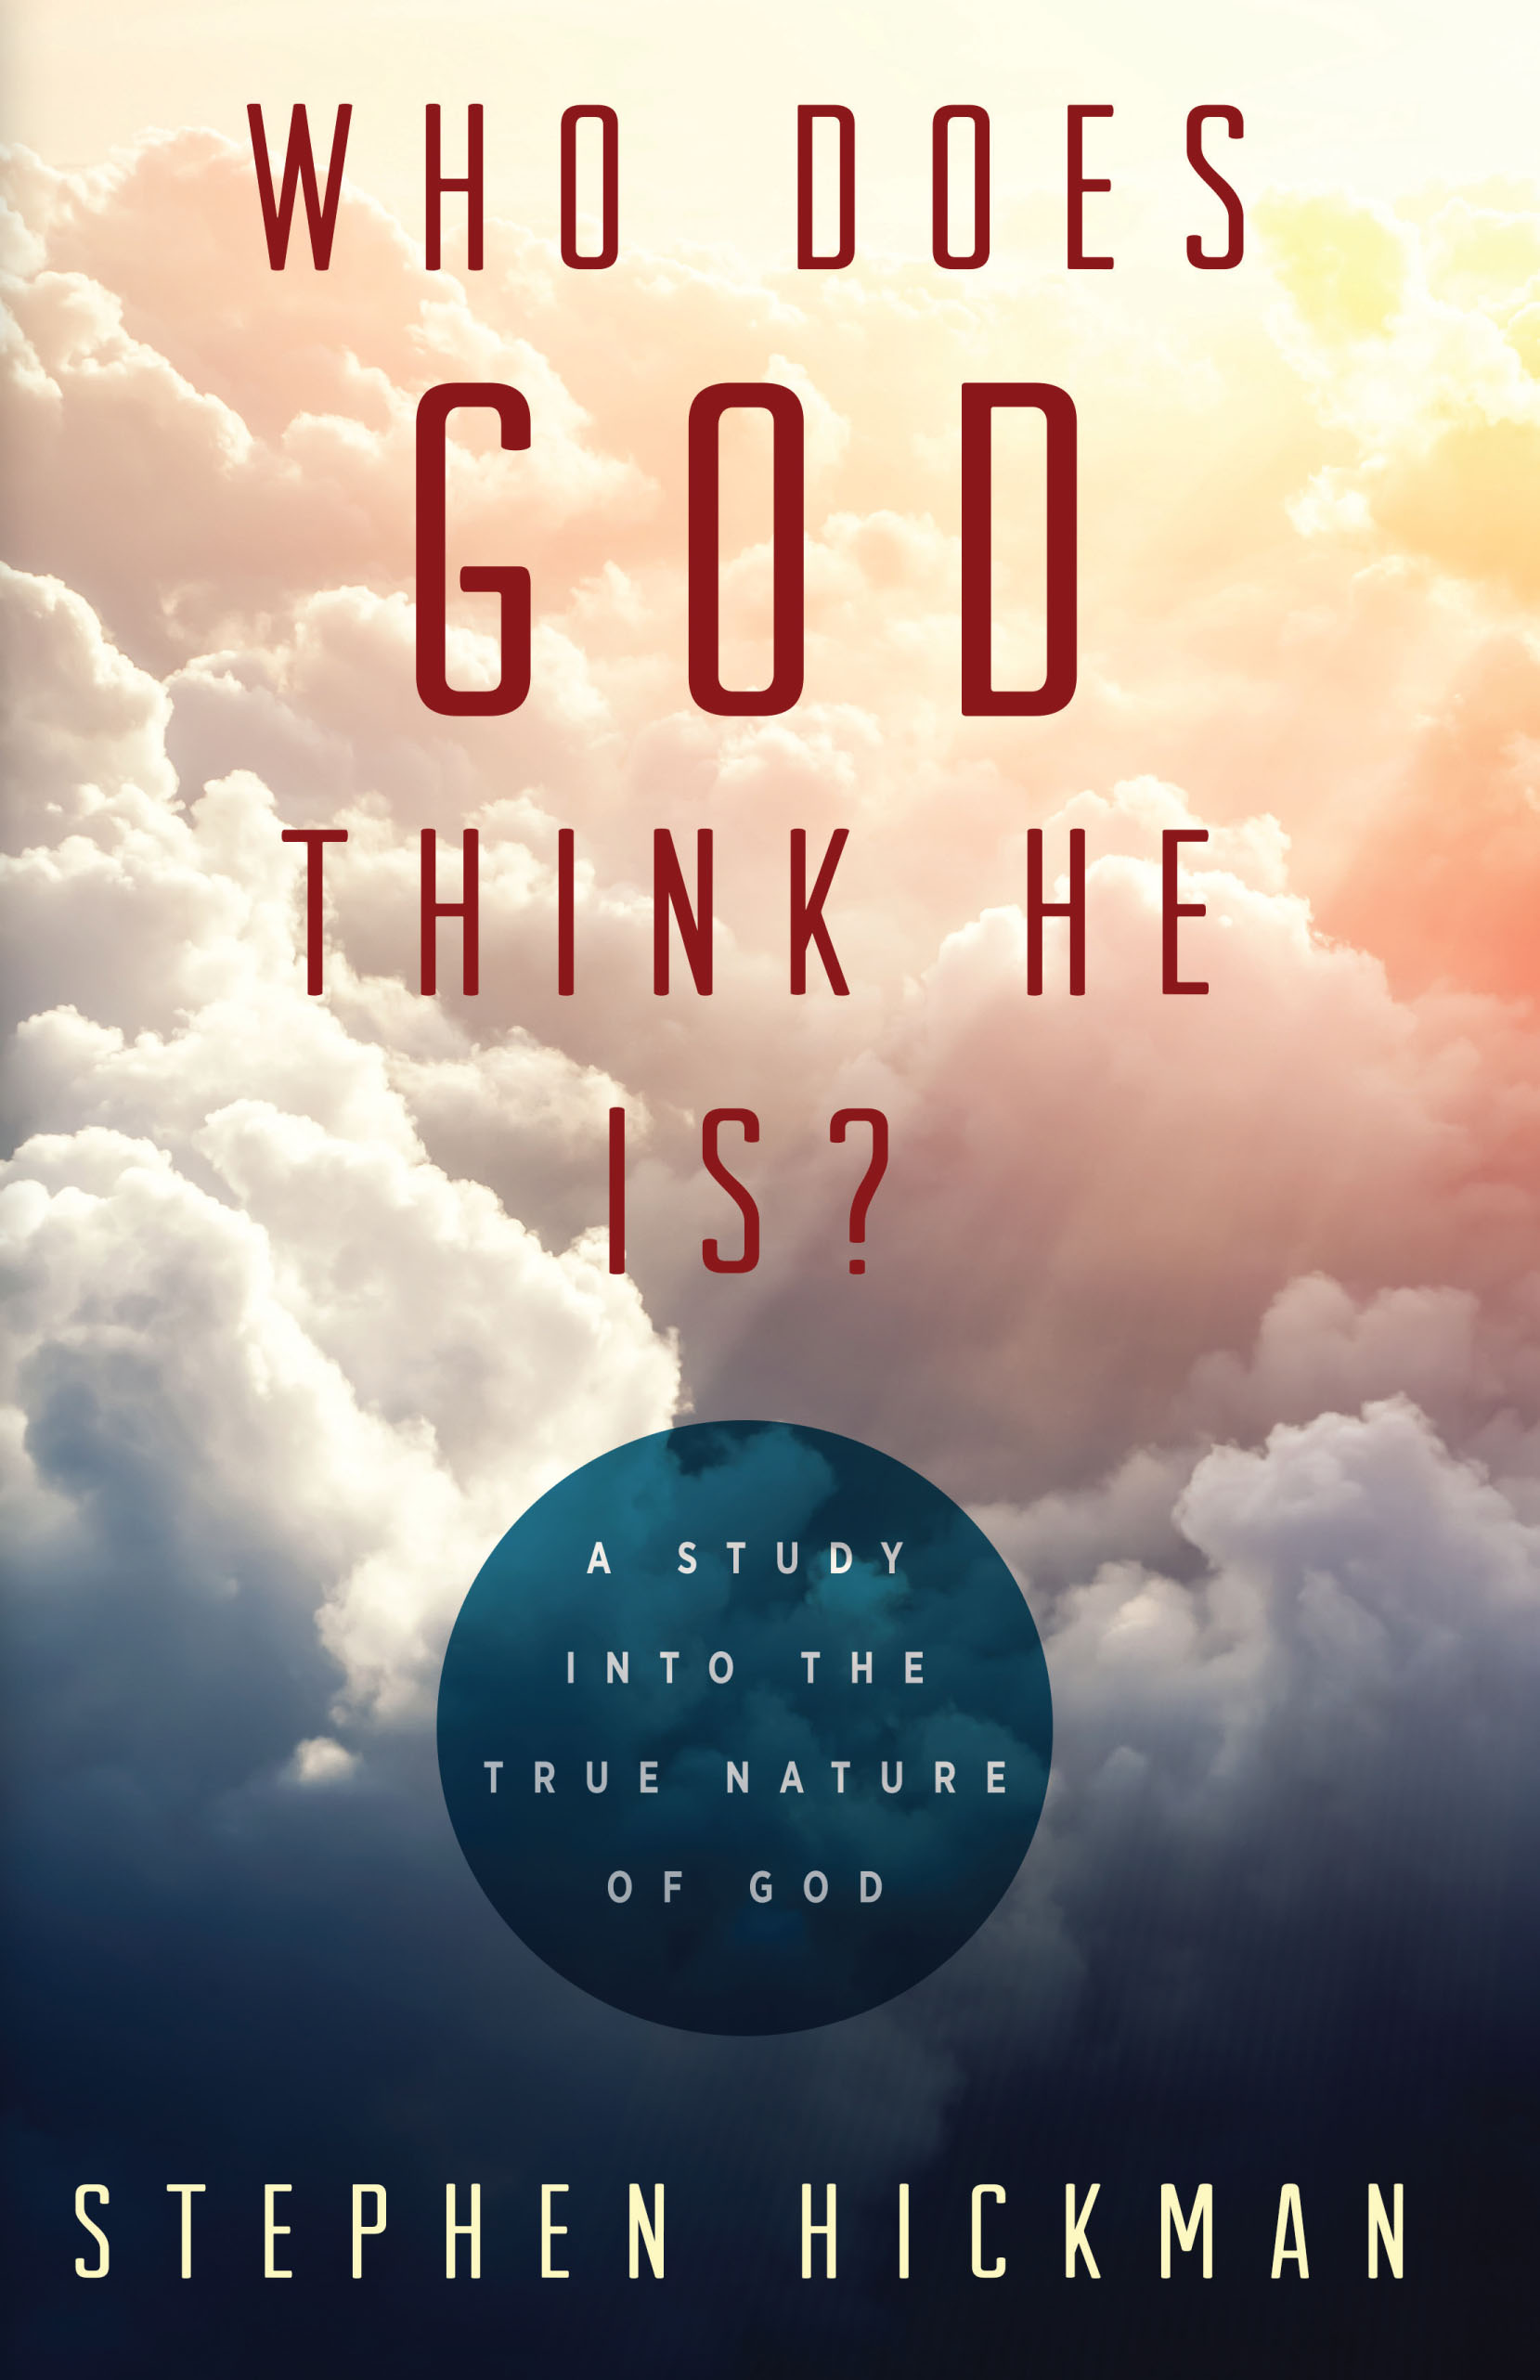 a research on the real nature of god See why the intricate dna in our body's cells caused a famous atheist to conclude that god must be real  for the origin of life and the complexity of nature.